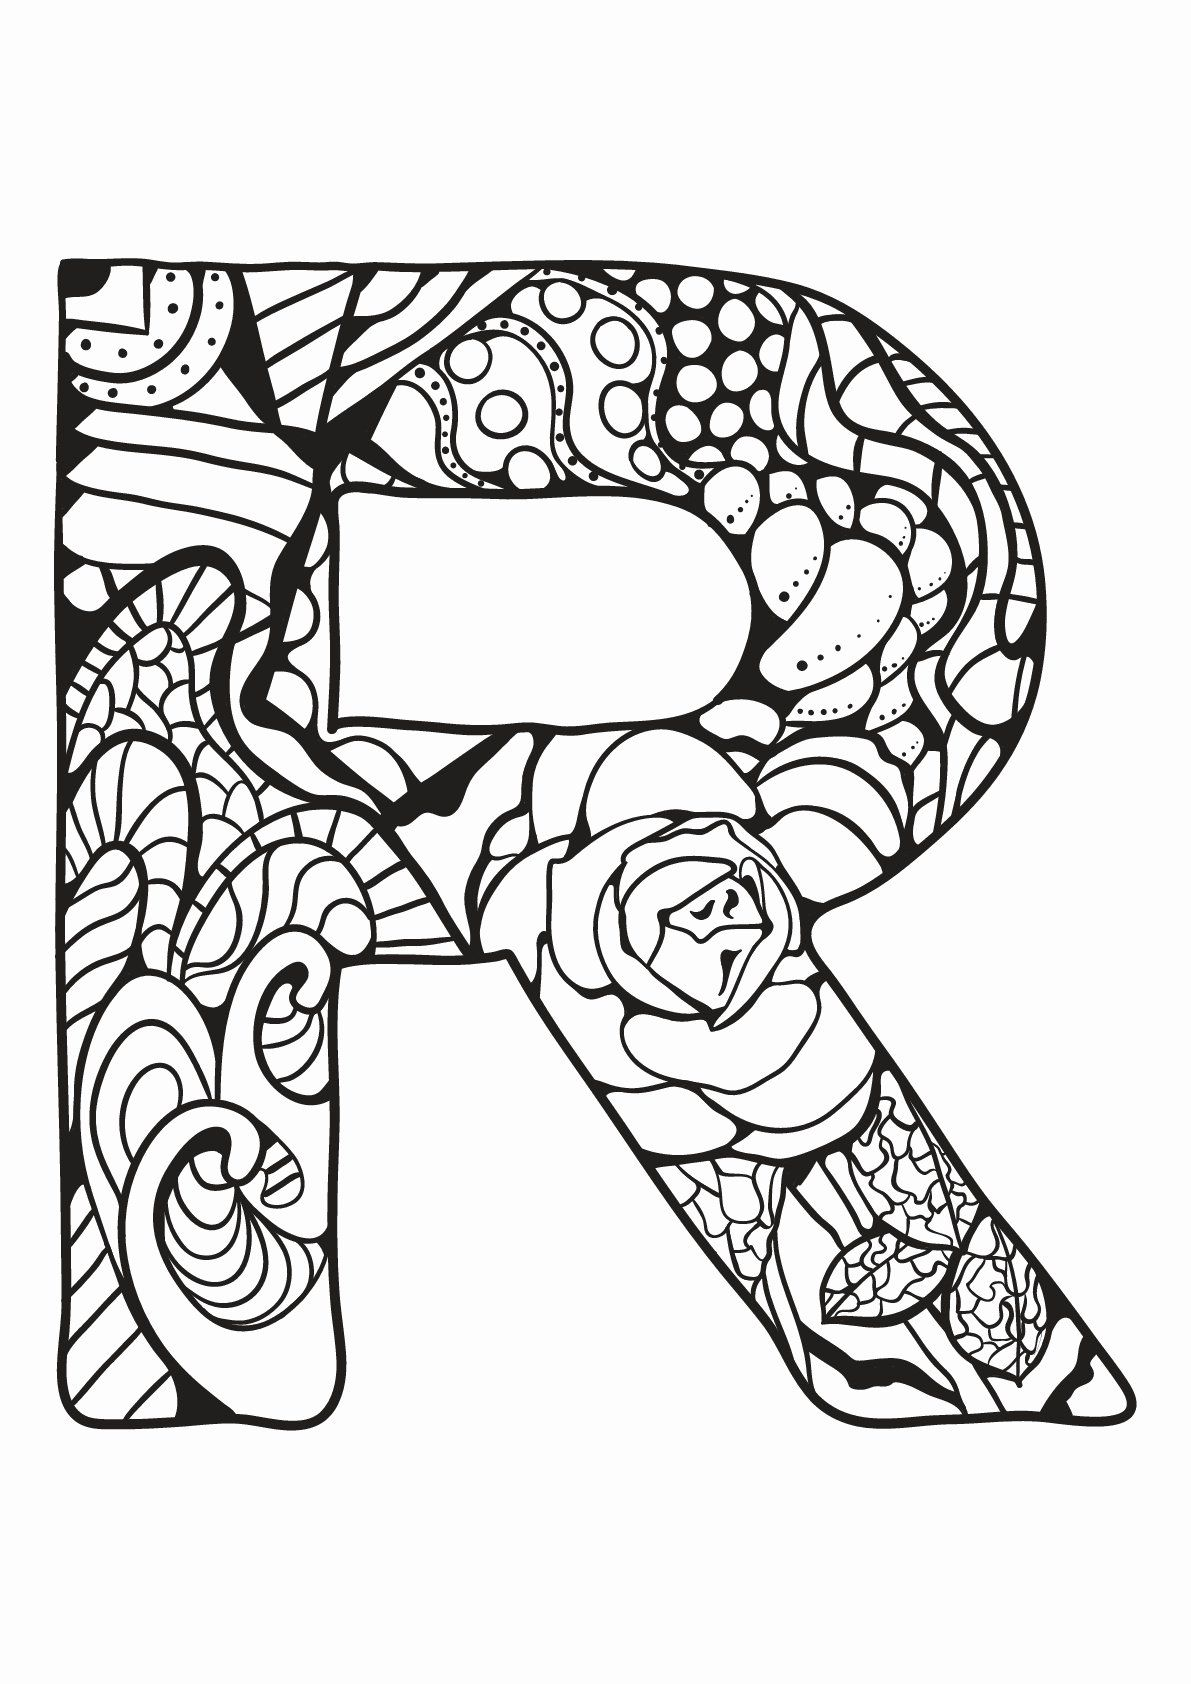 Alphabet Colouring Videos Luxury Alphabet To Color For Kids Alphabet Kids Coloring Pages In 2020 Abc Coloring Pages Online Coloring Pages Alphabet Coloring